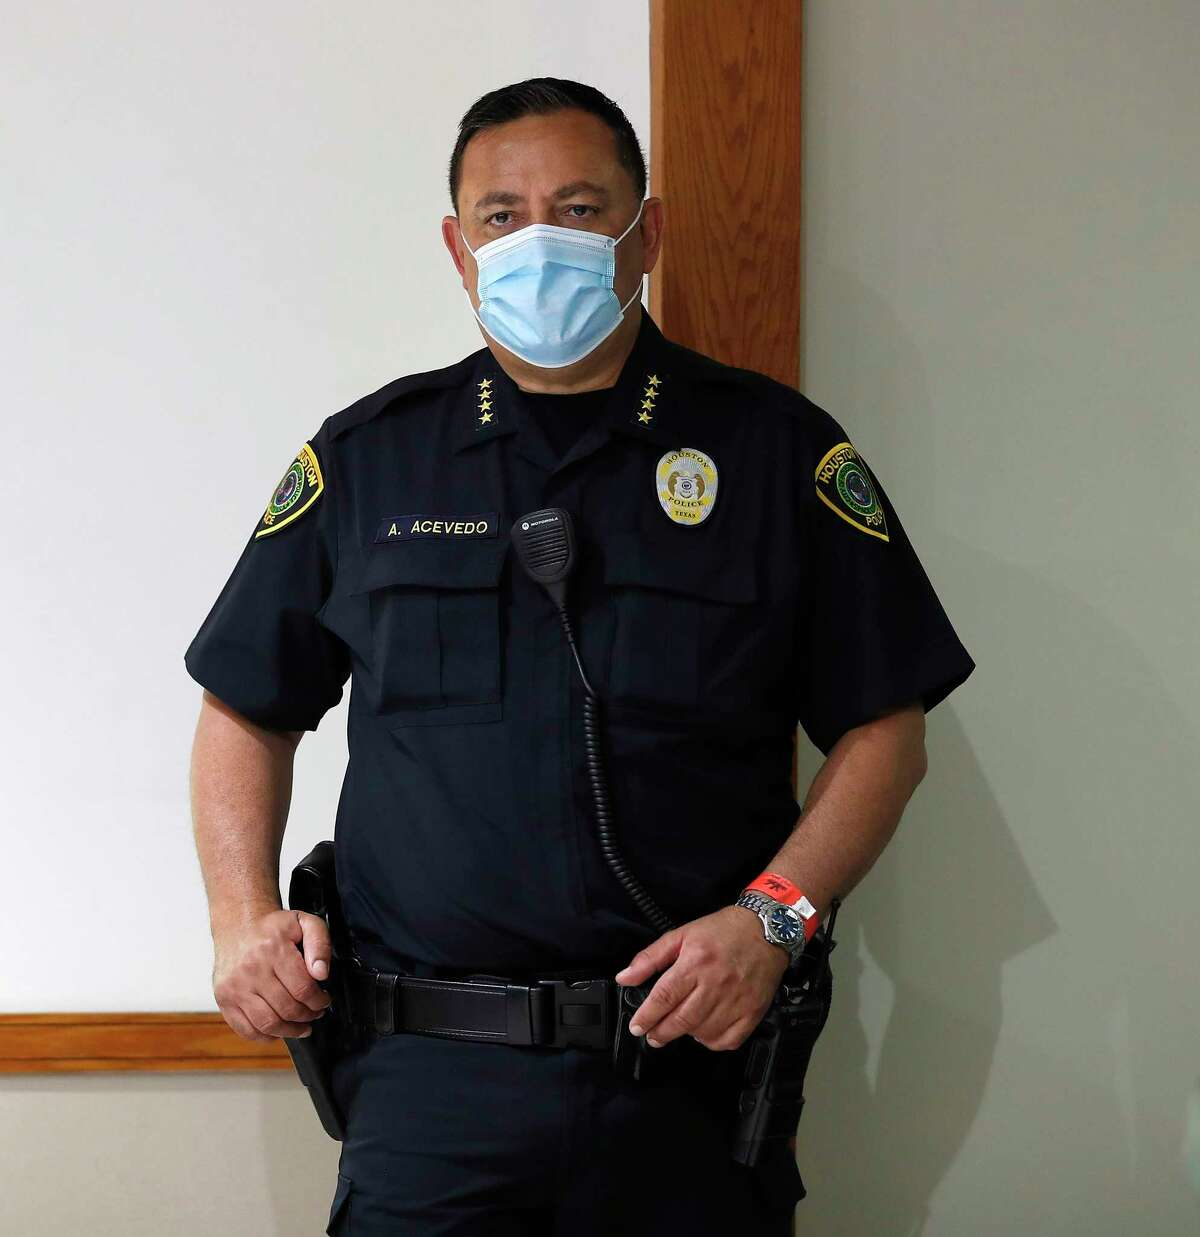 Houston Police Chief Art Acevedo wears a mask as he listened as Mayor Sylvester Turner joined Harris County Judge Lina Hidalgo at a news conference to provide COVID-19 announcements and updates, including the new rules requiring everyone to wear masks while outside, in Houston, Wednesday, April 22, 2020.